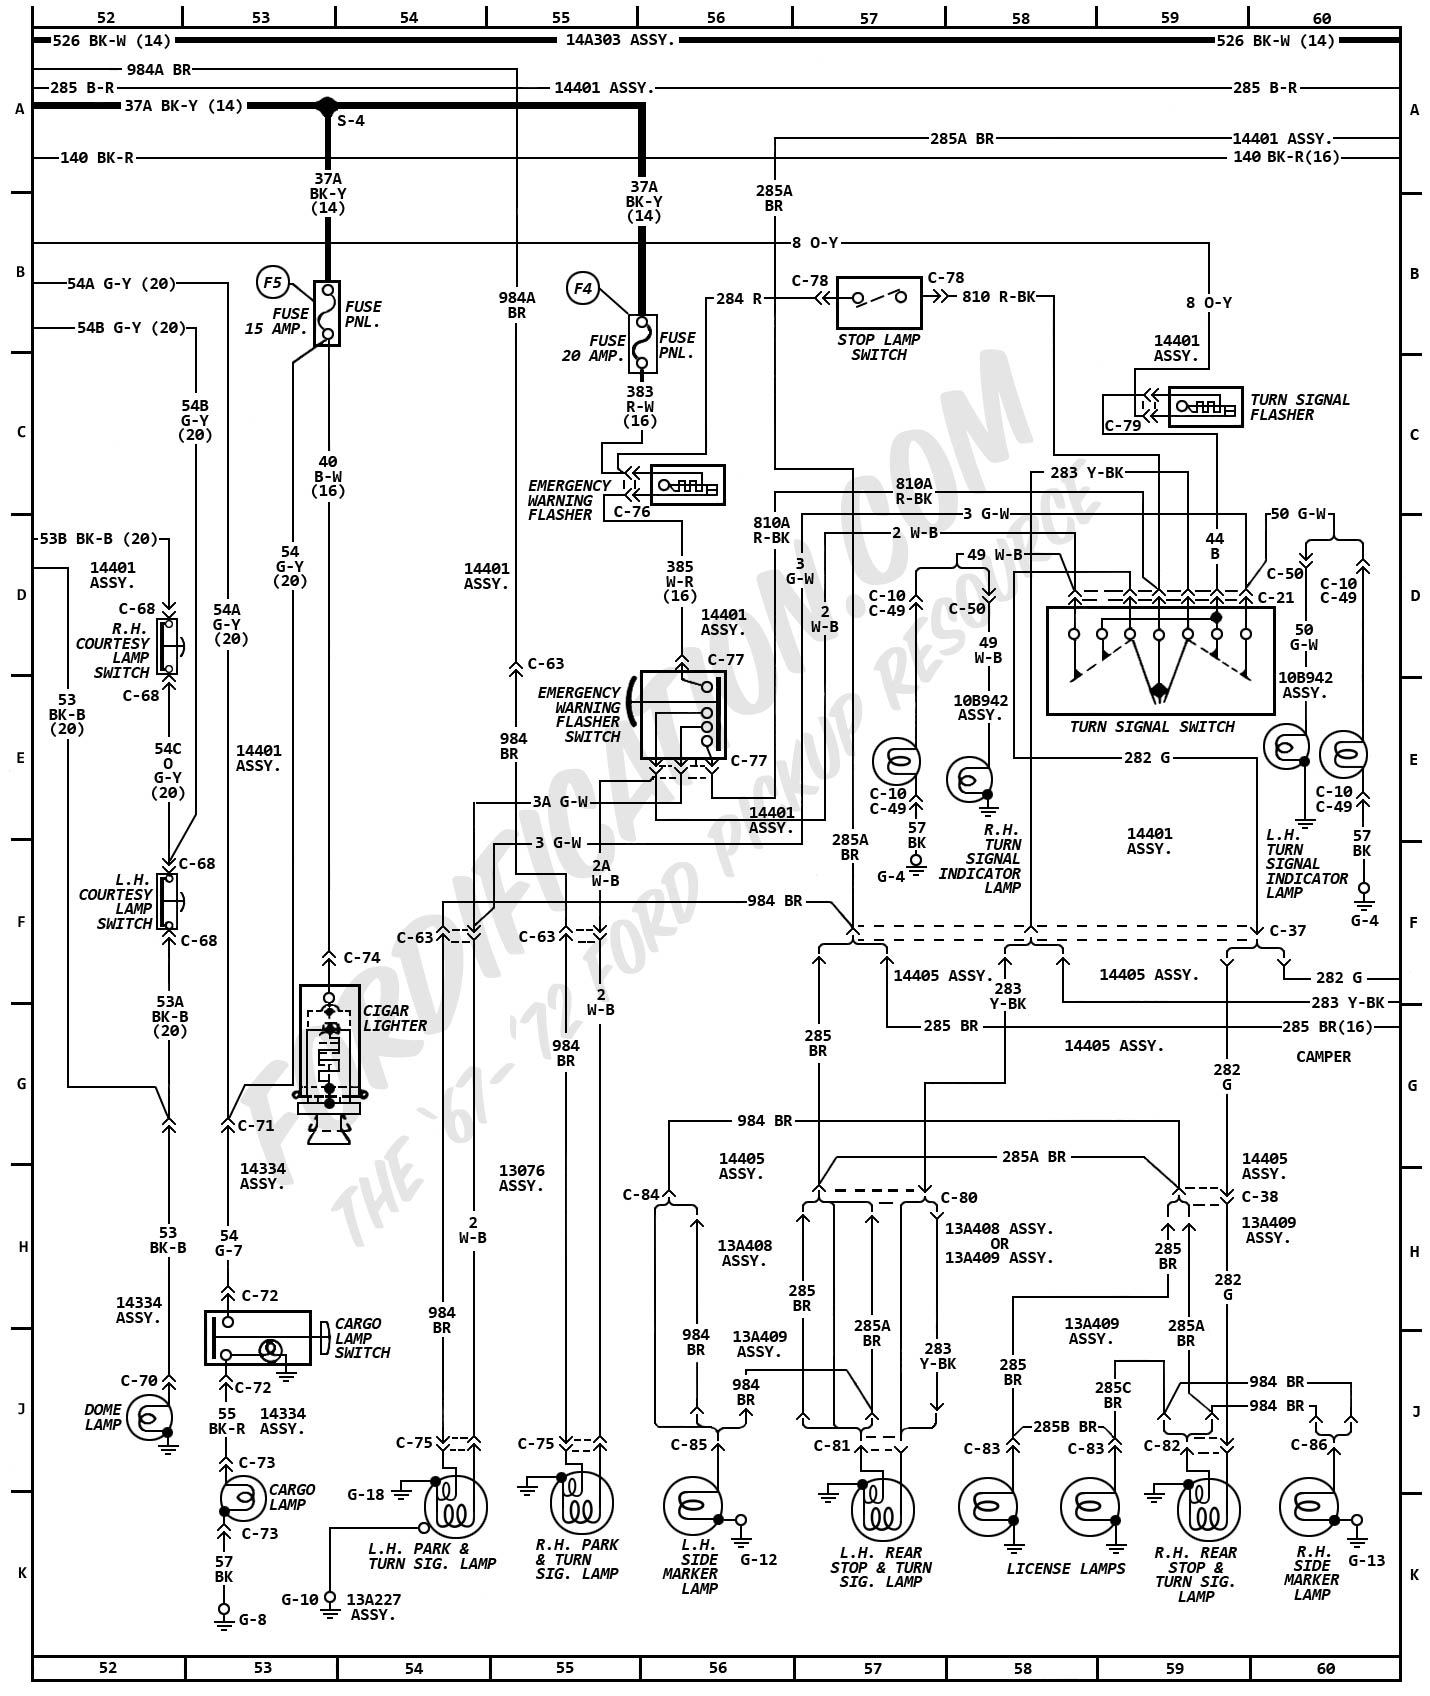 72 f250 wiring diagram only 1972 ford truck wiring diagrams - fordification.com 1992 sportster wiring diagram only